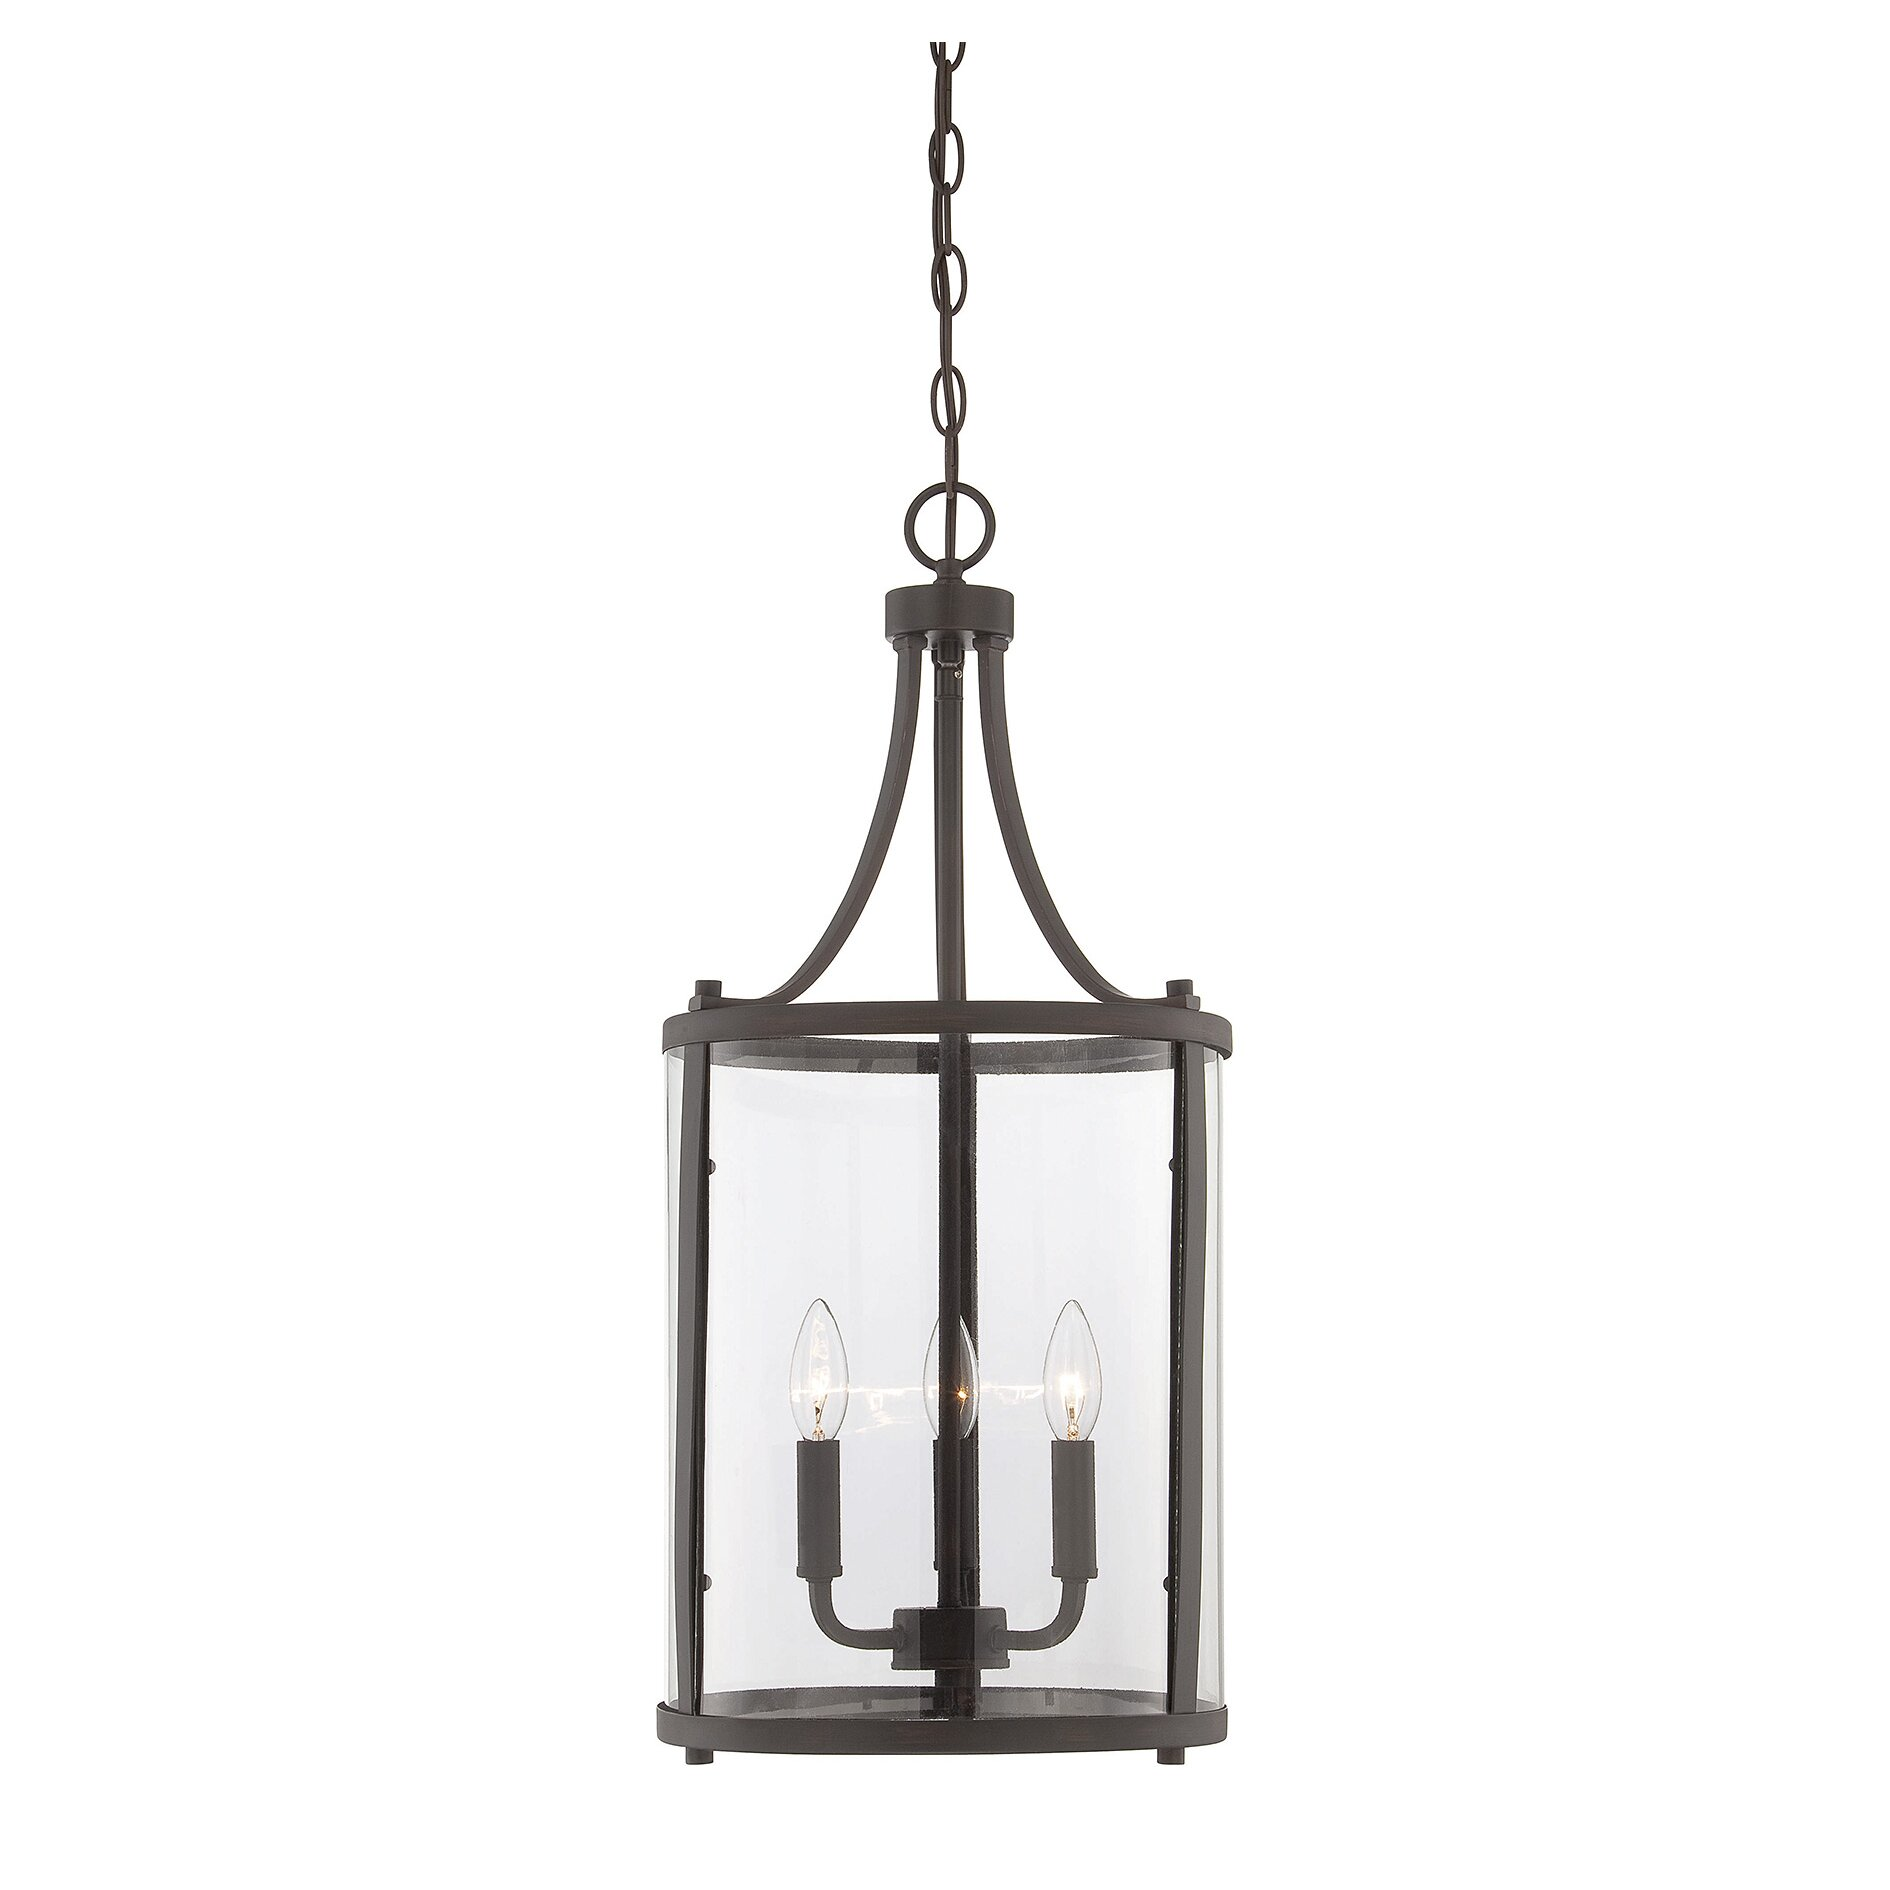 Savoy House Foyer Light : Savoy house penrose light foyer lantern reviews wayfair